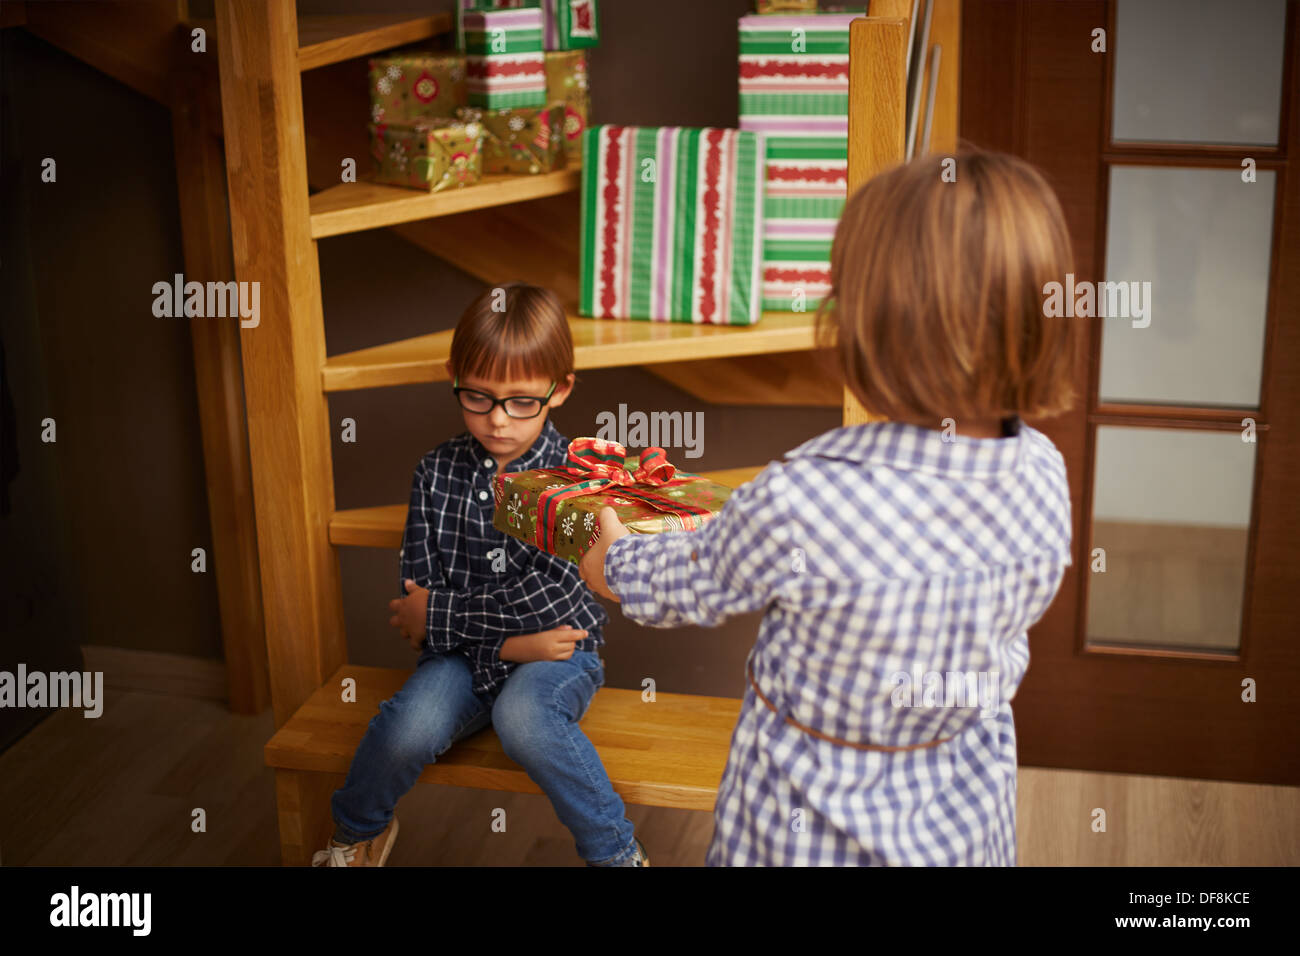 Spoiled kid refusing a Christmas present his sister is offering - Stock Image